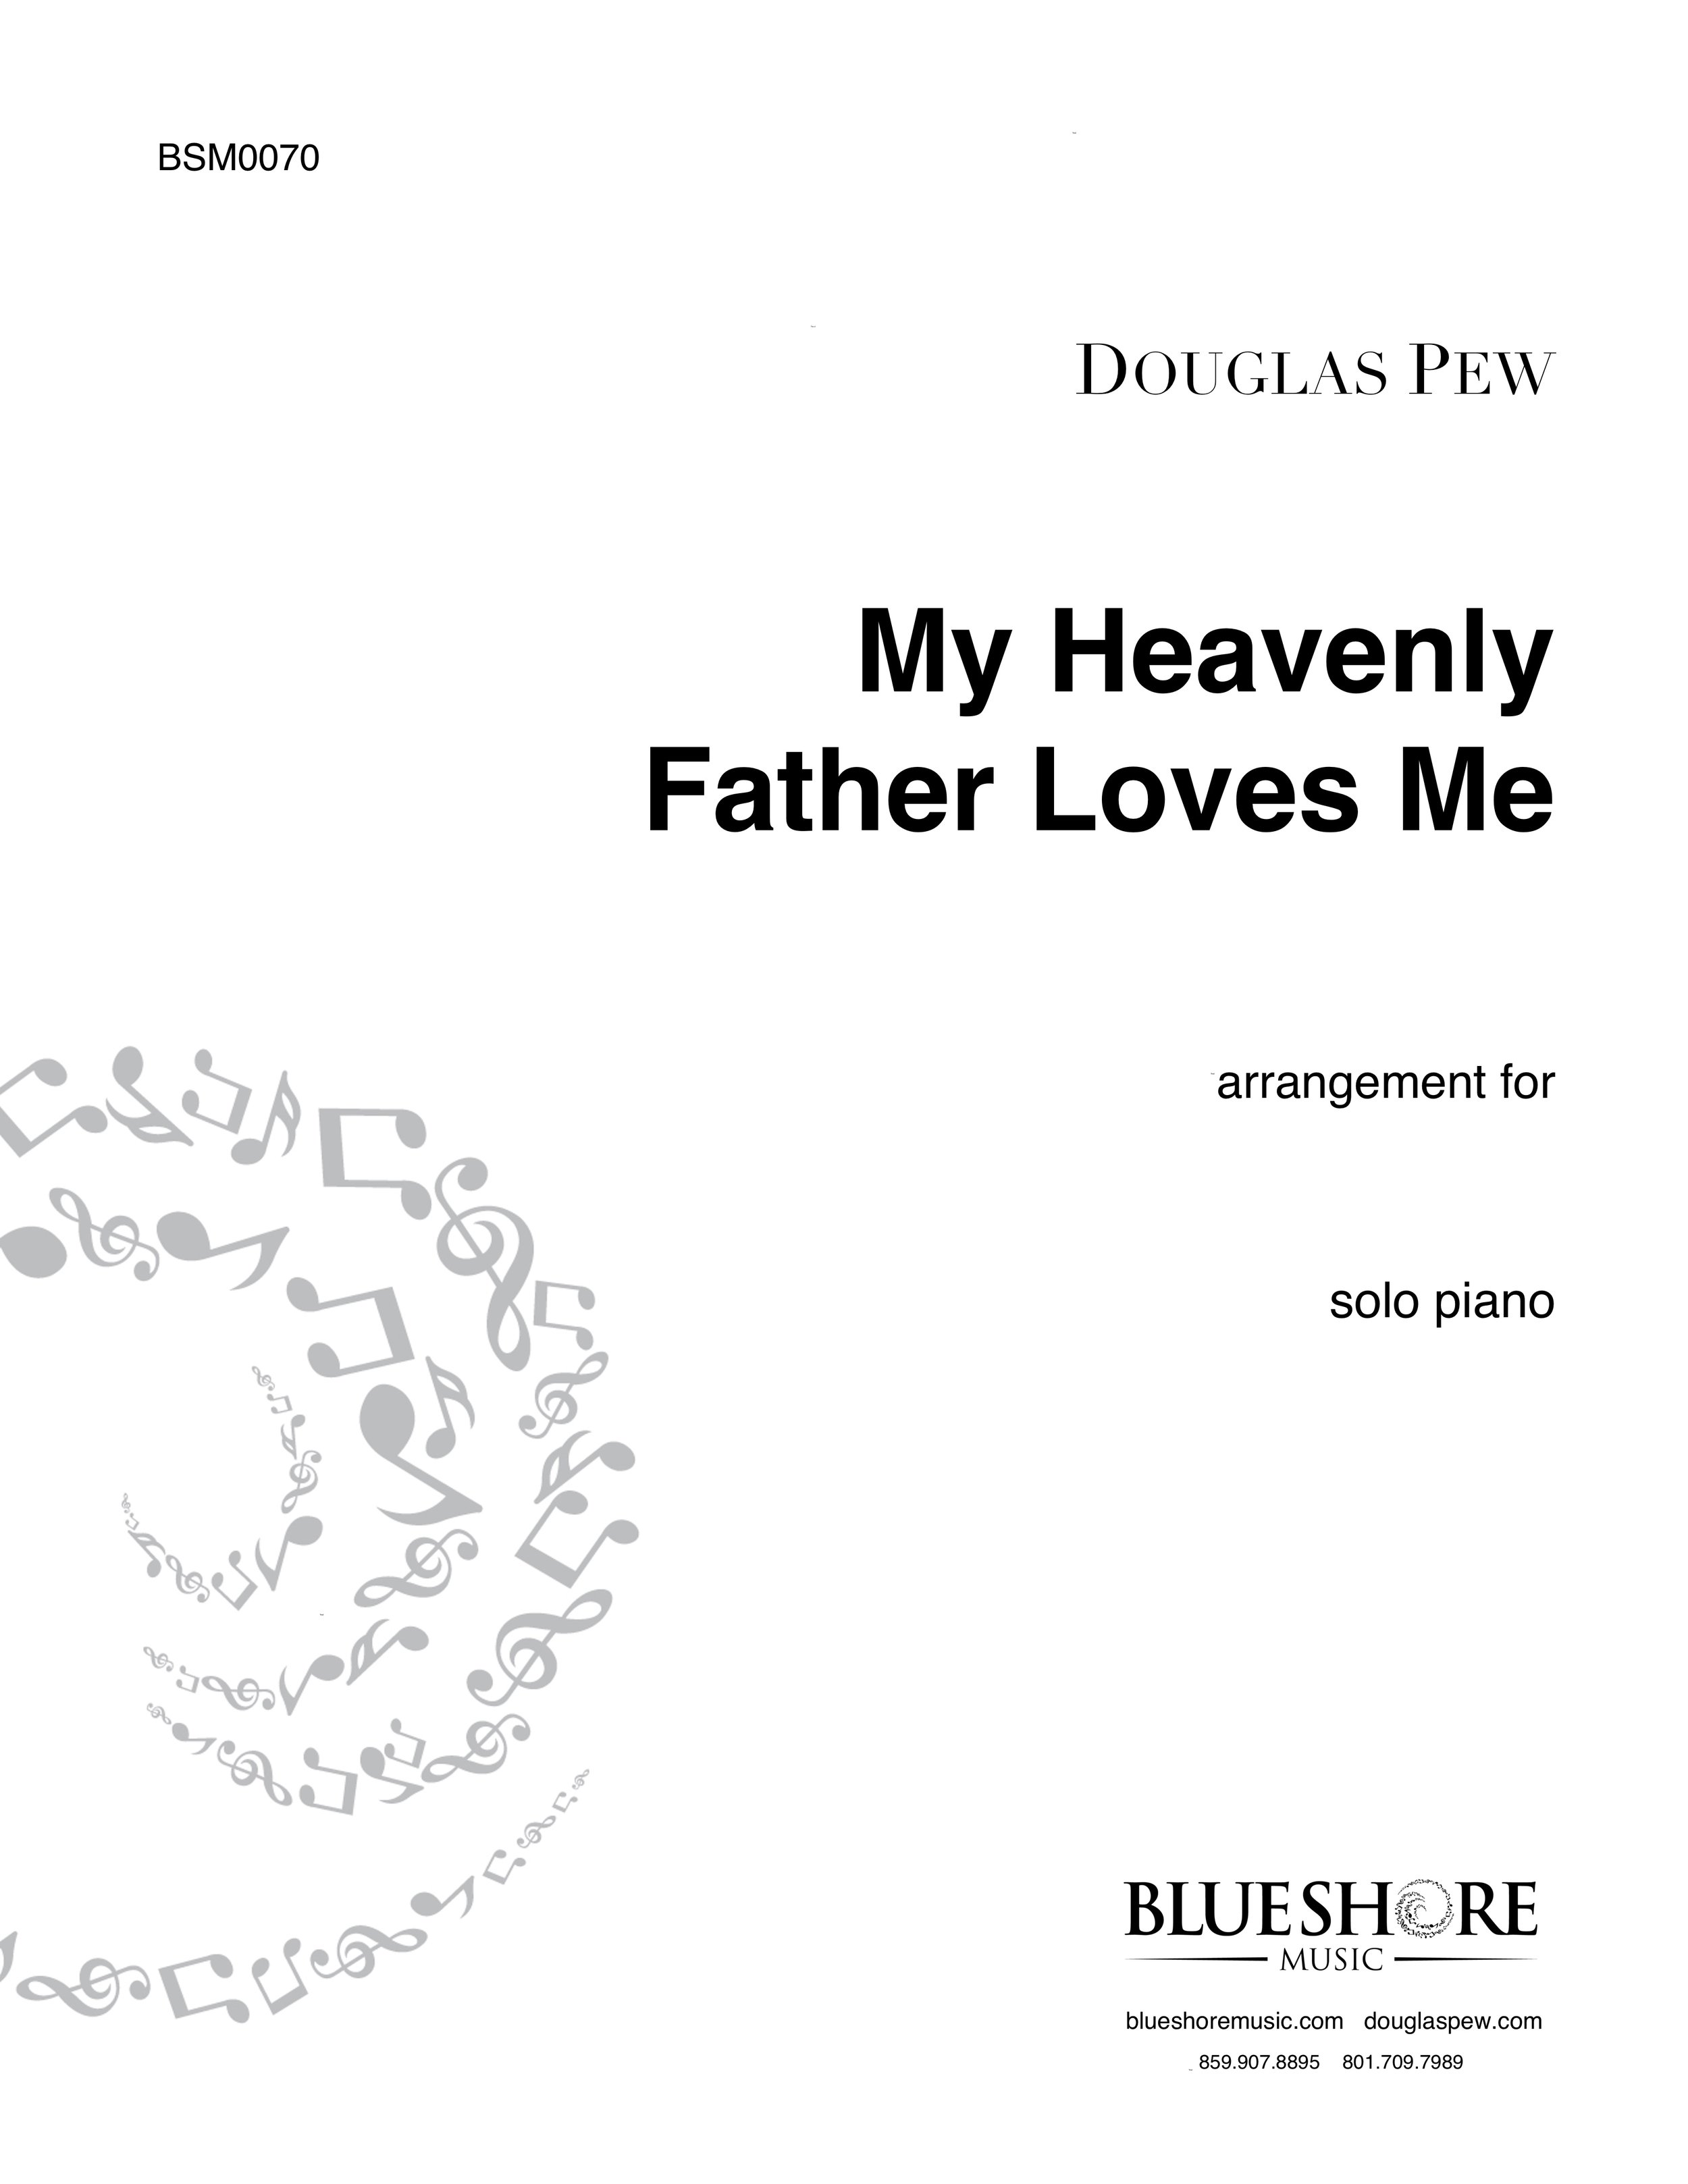 Pew_BSM0070_MyHeavenlyFatherLovesMe_SOLO_PIANO_2018_05May17_Cover.jpg